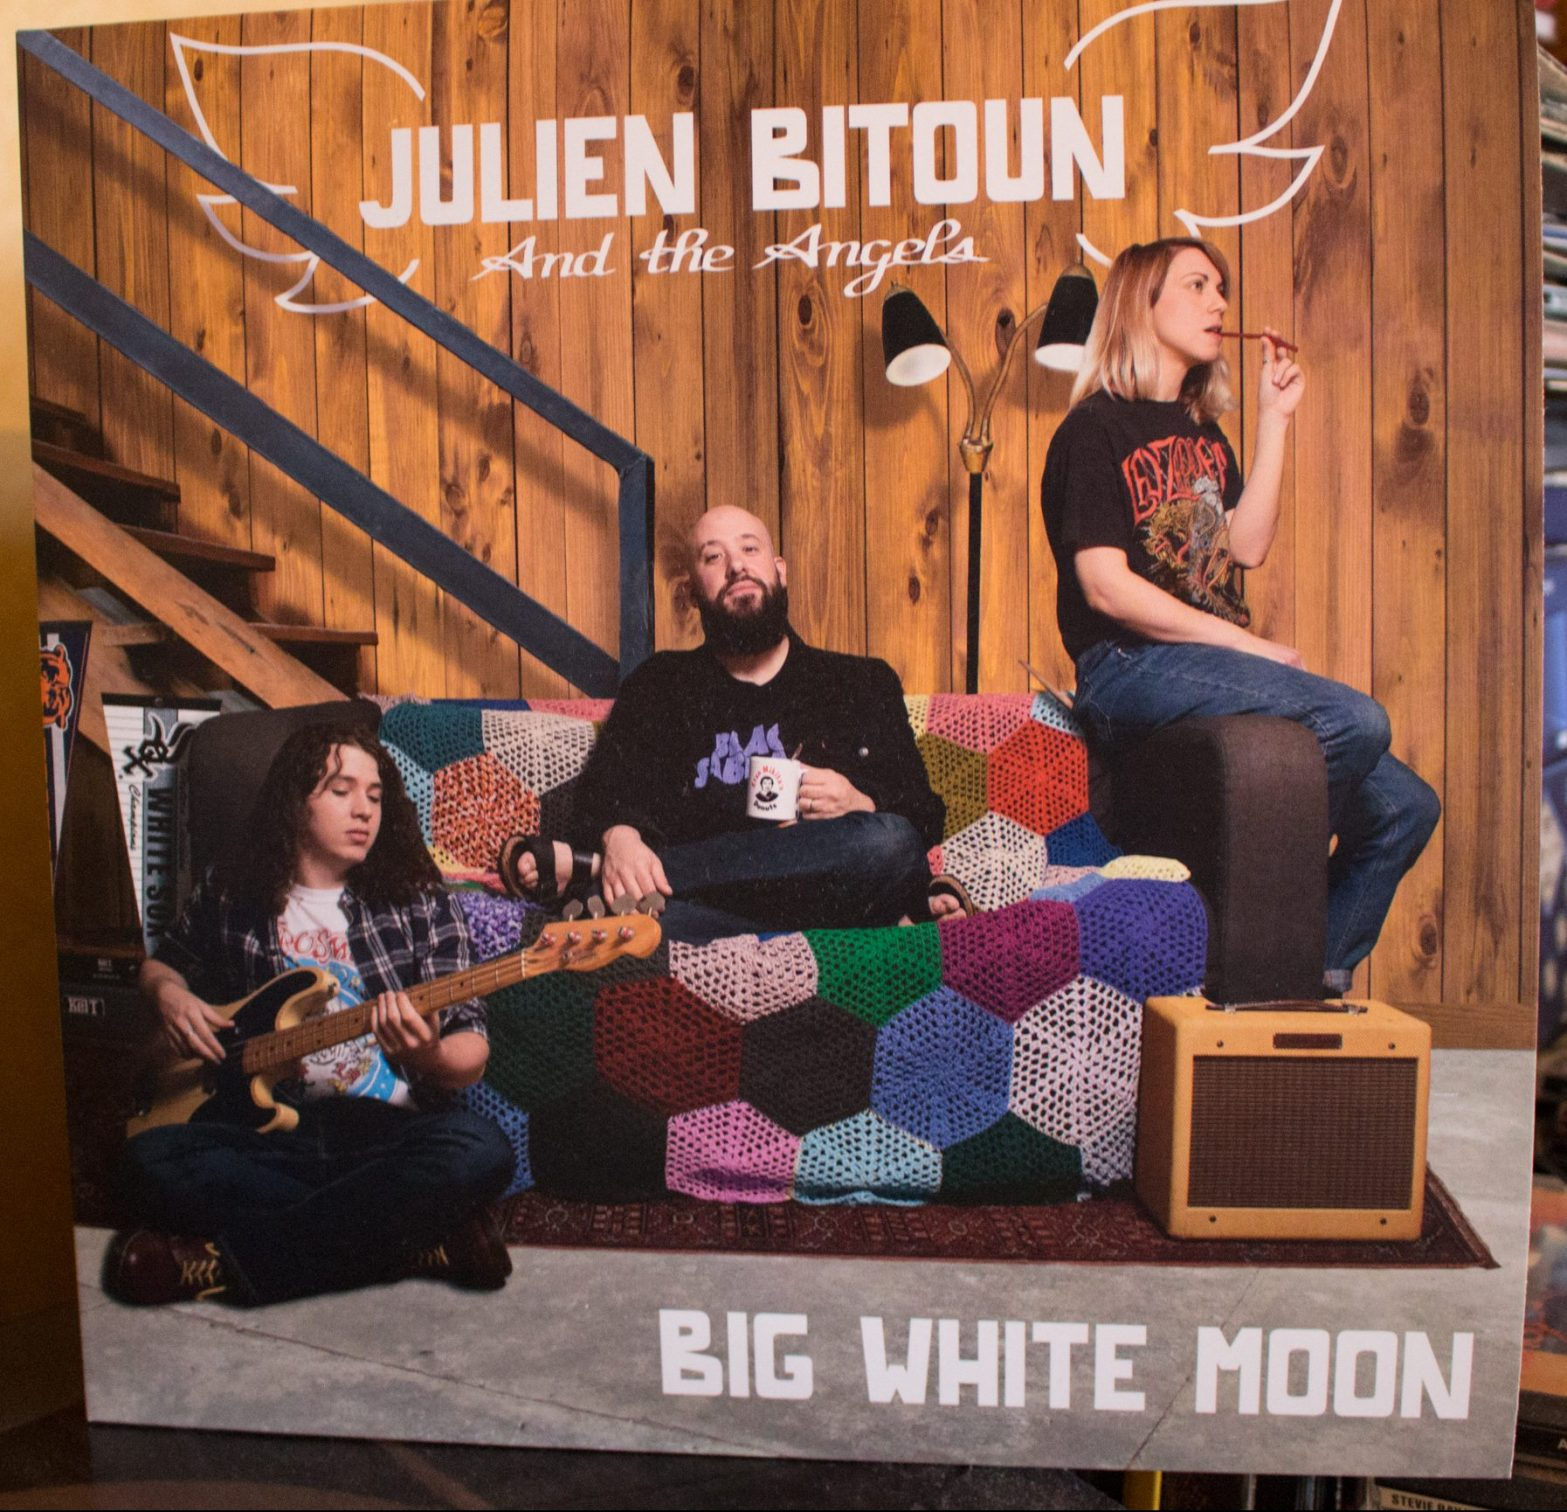 Julien Bitoun and the Angels - Big White Moon